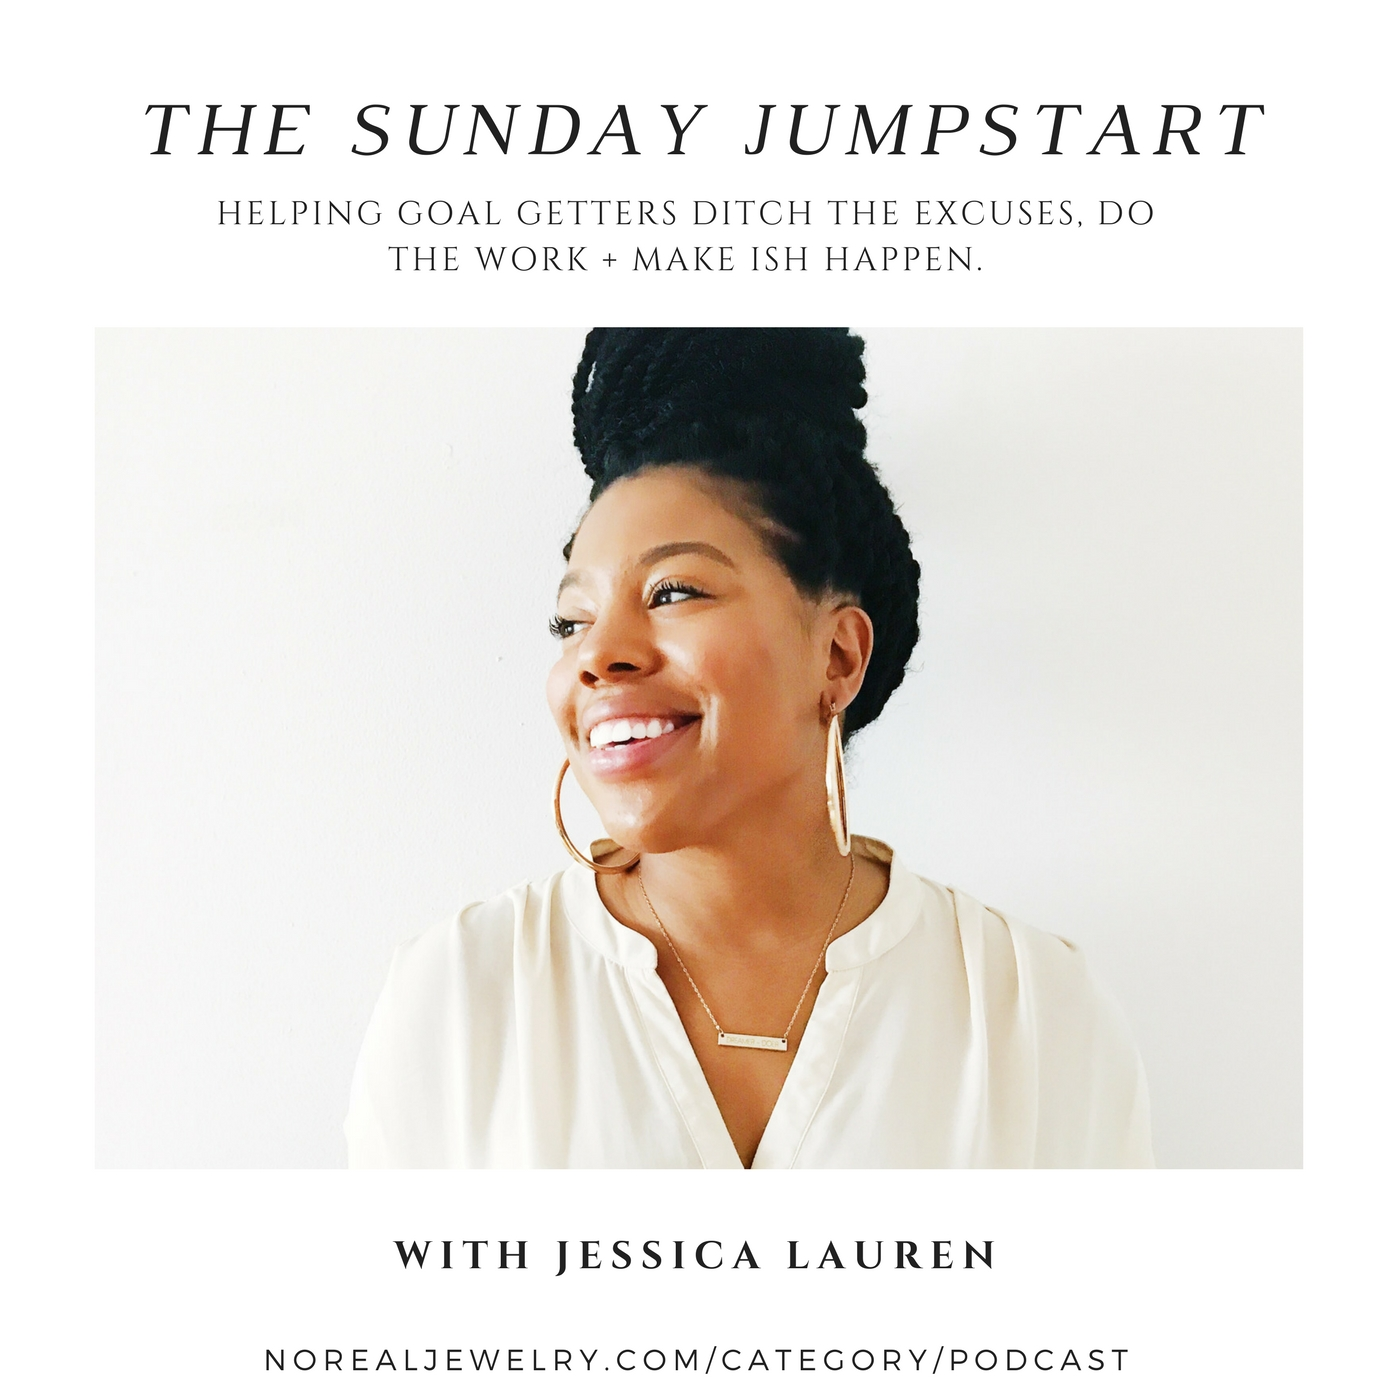 The Sunday Jumpstart Podcast Cover (2)